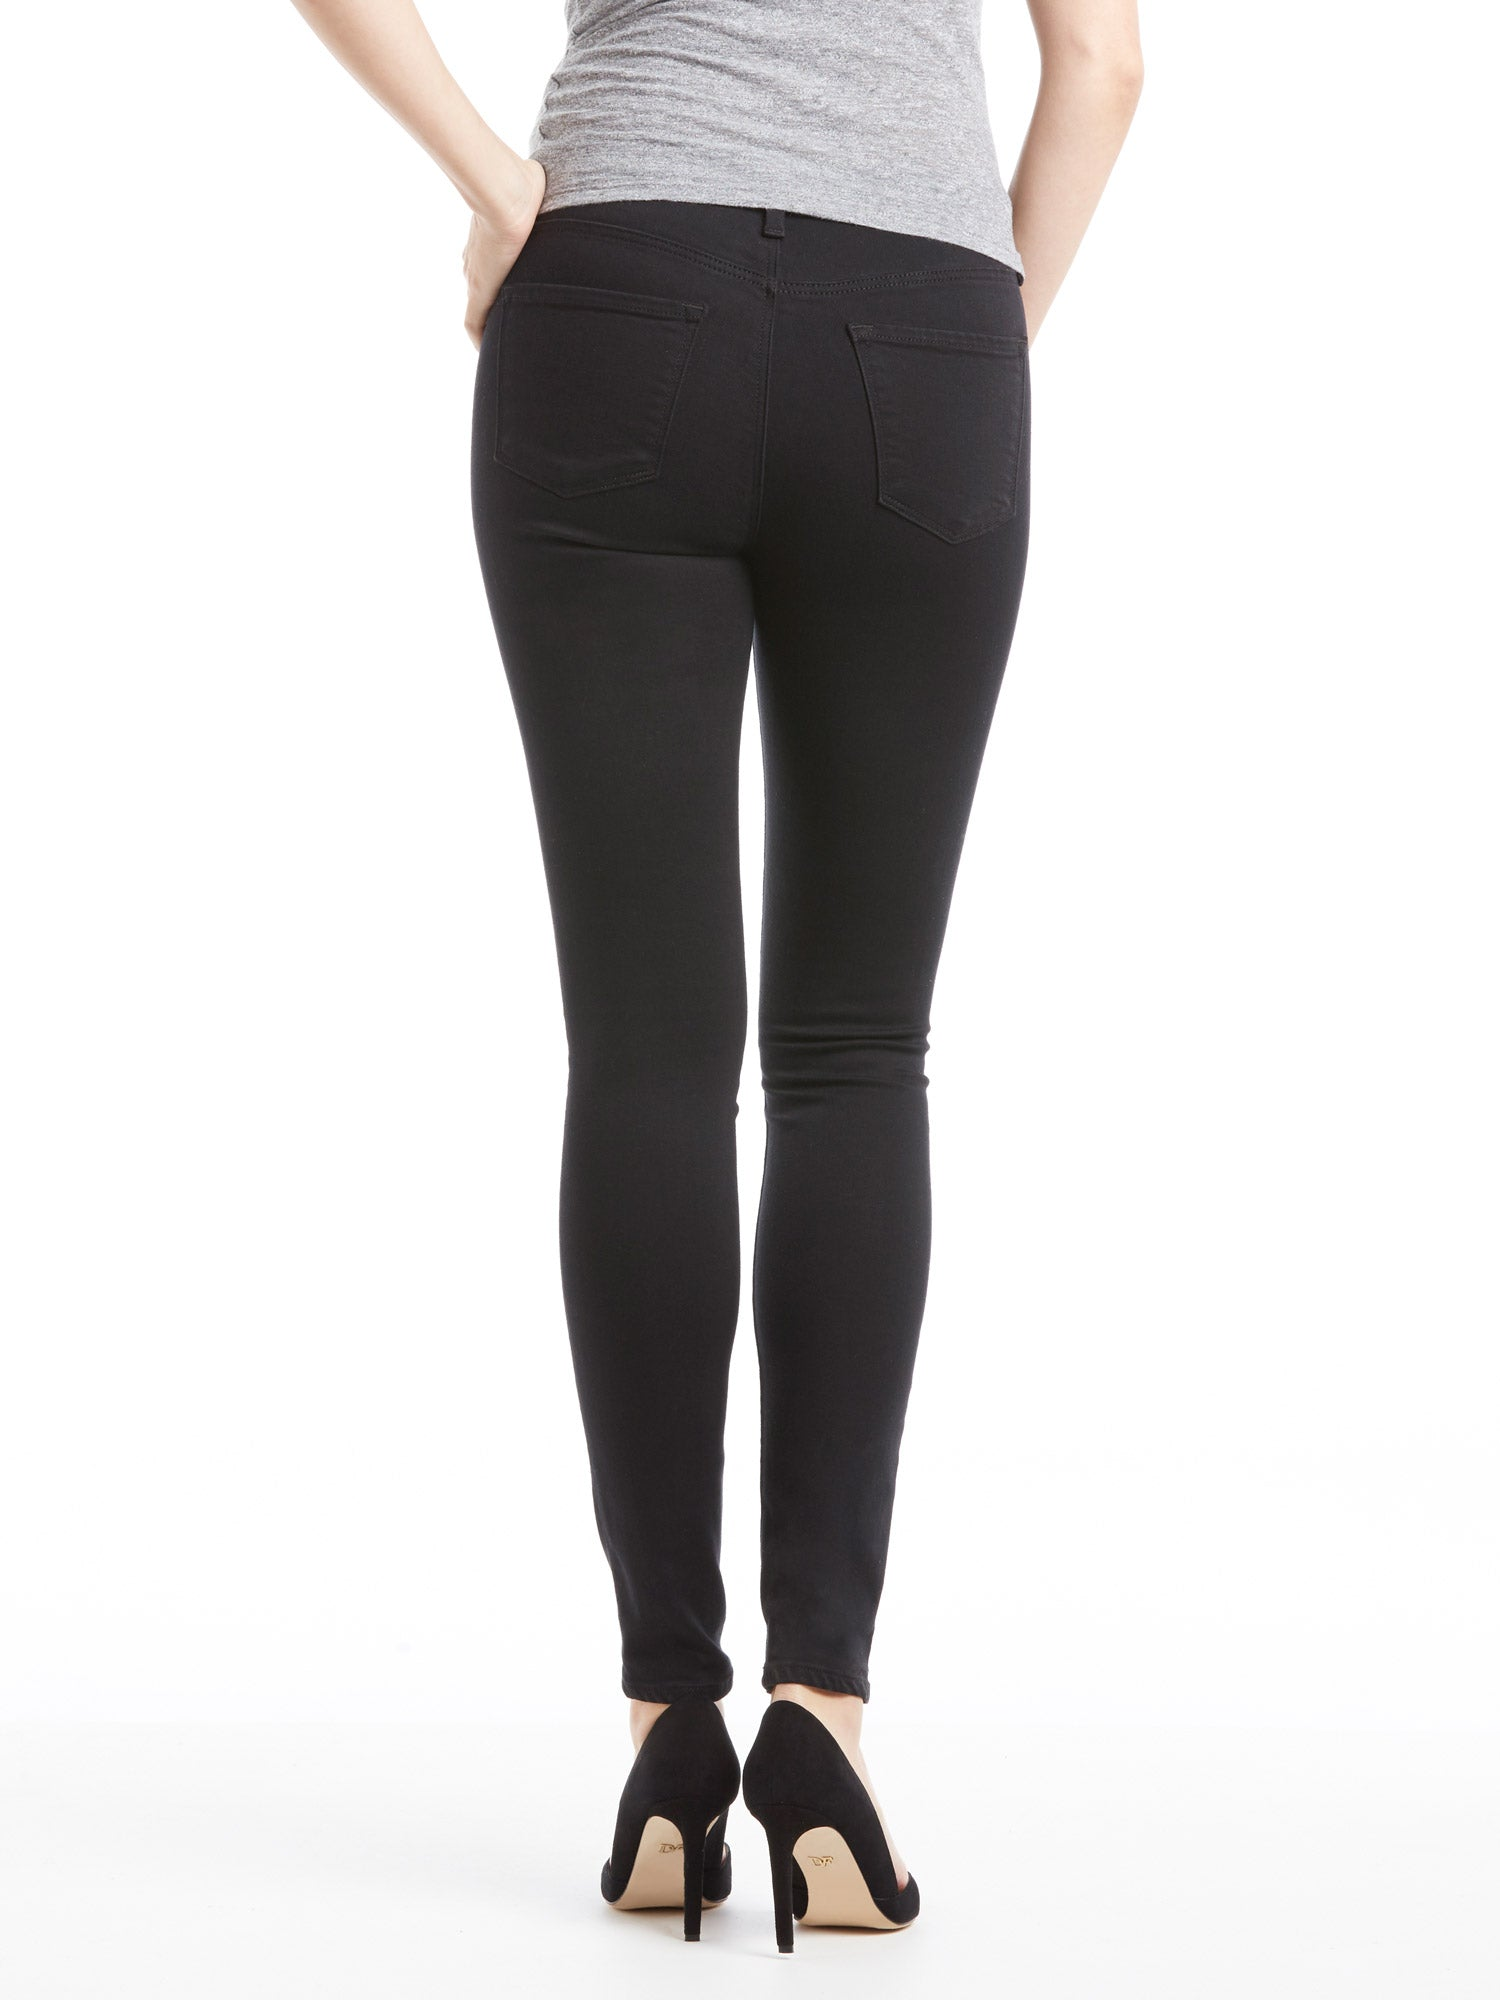 TILDEN | J Brand Mama J Super Skinny Jean - Seriously Black